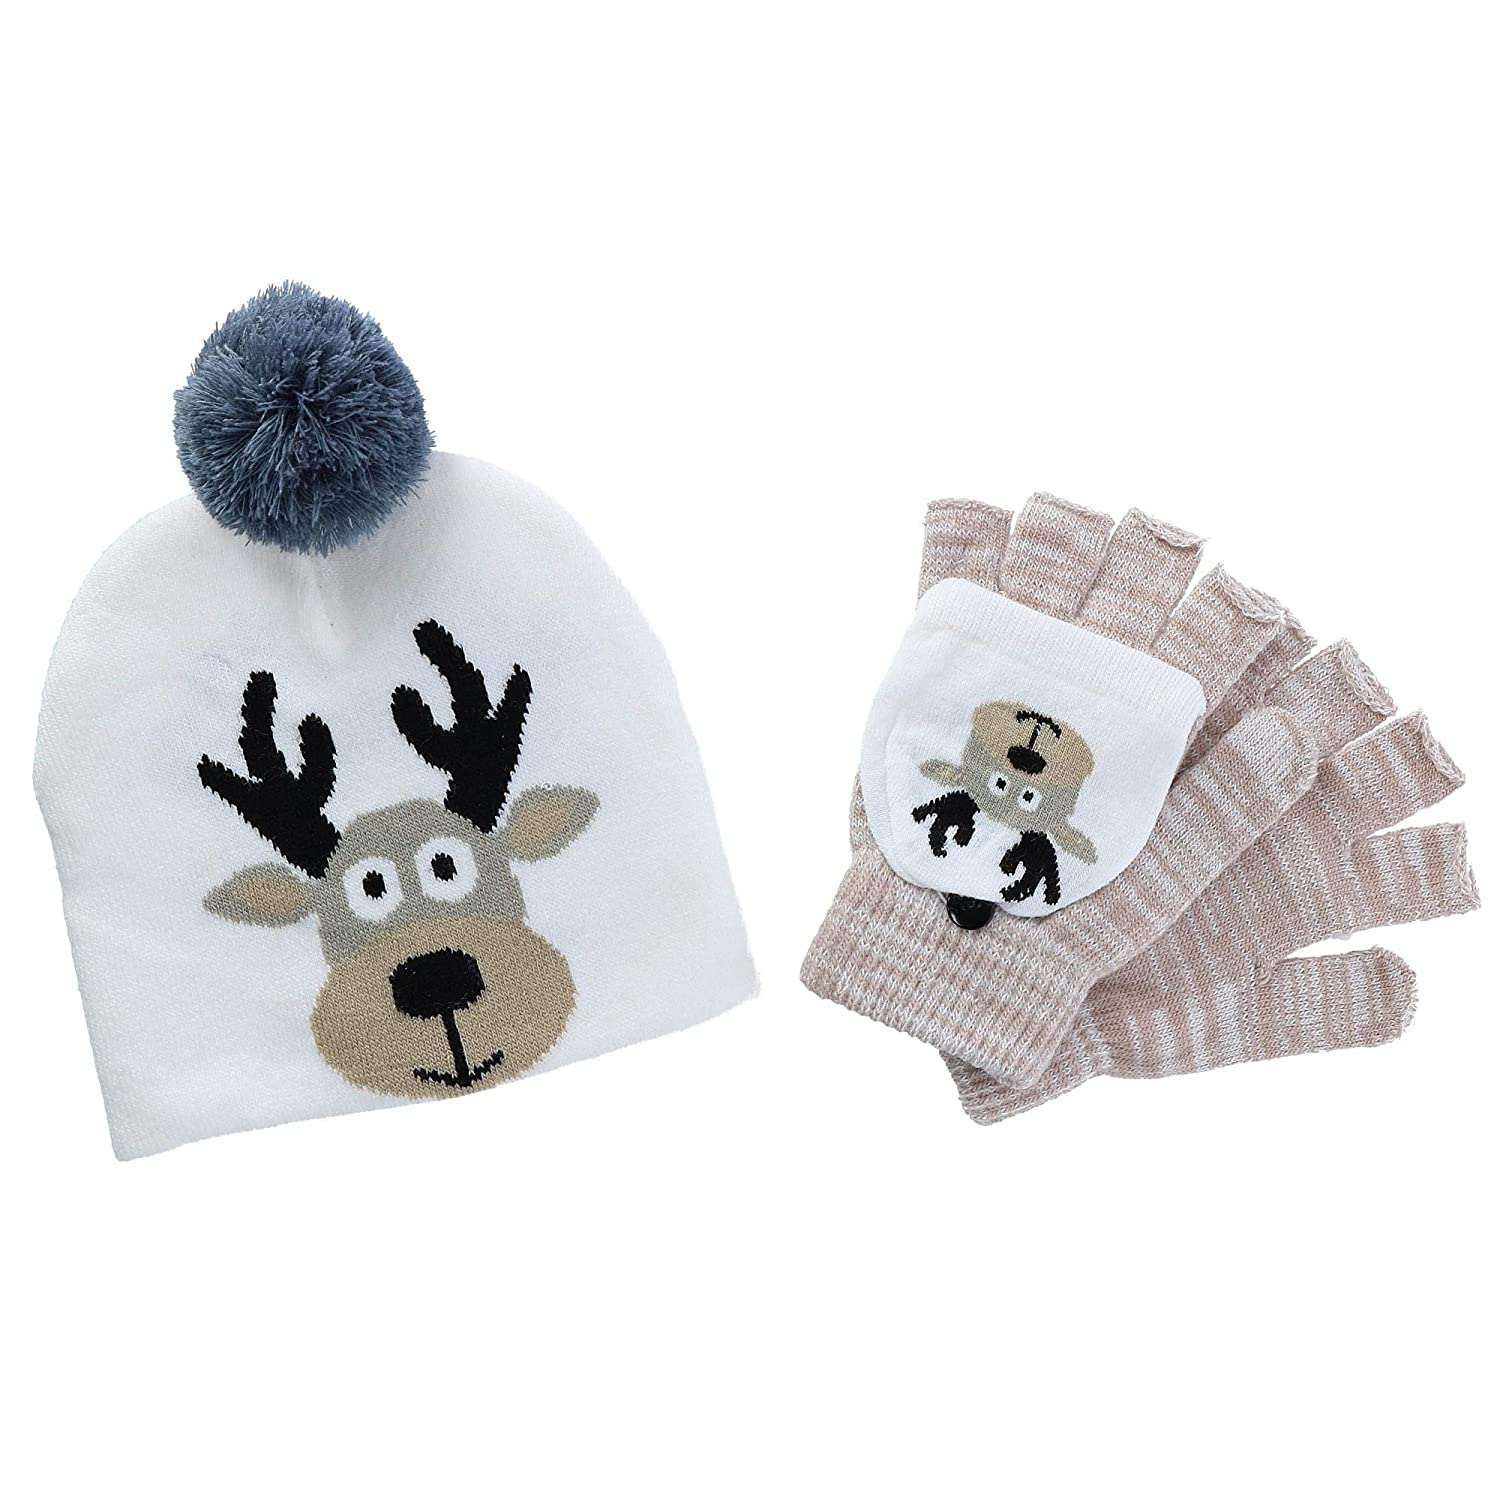 CTM® Kids' Winter Themed Hat and Convertible Glove Set, Grey GM-XMAS112ST-GRY